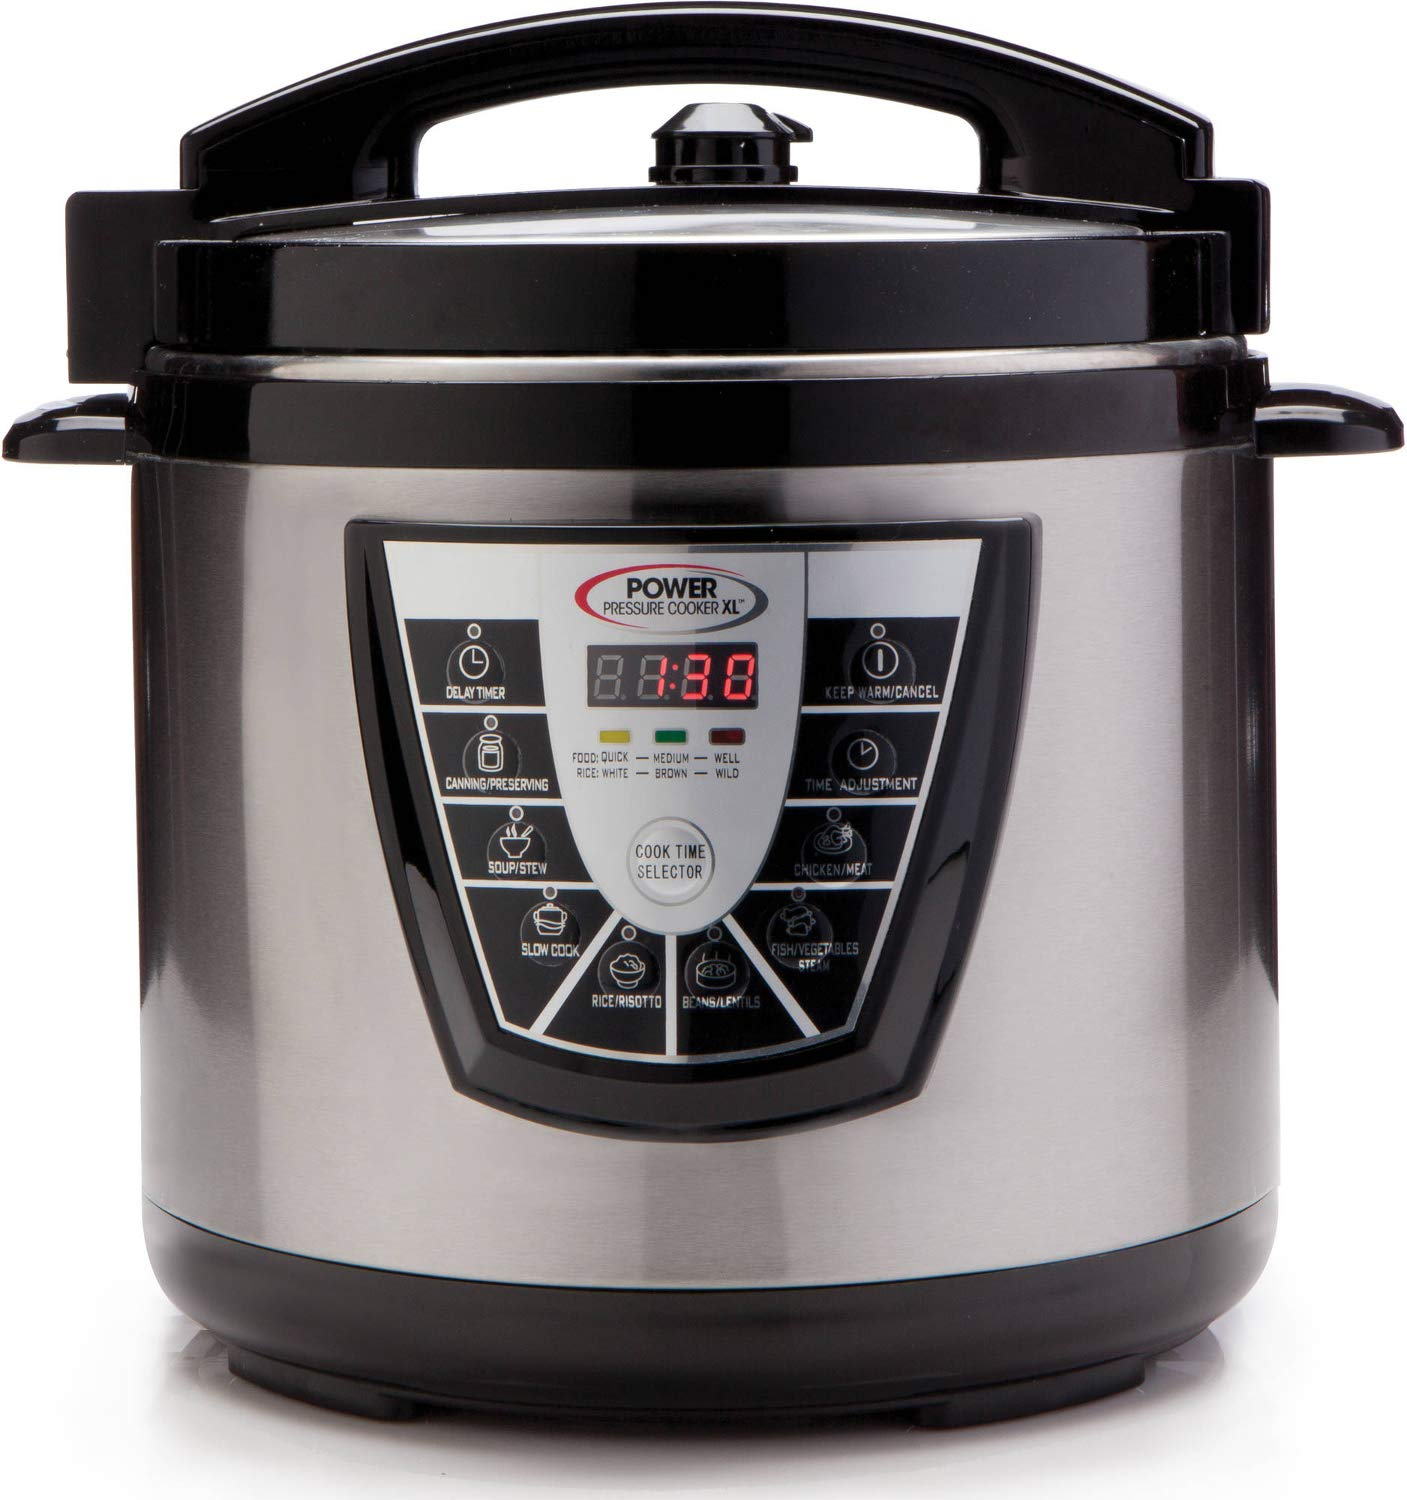 Power Pressure Cooker XL 6 Quart - Silver by Power Pressure Cooker XL (Image #1)